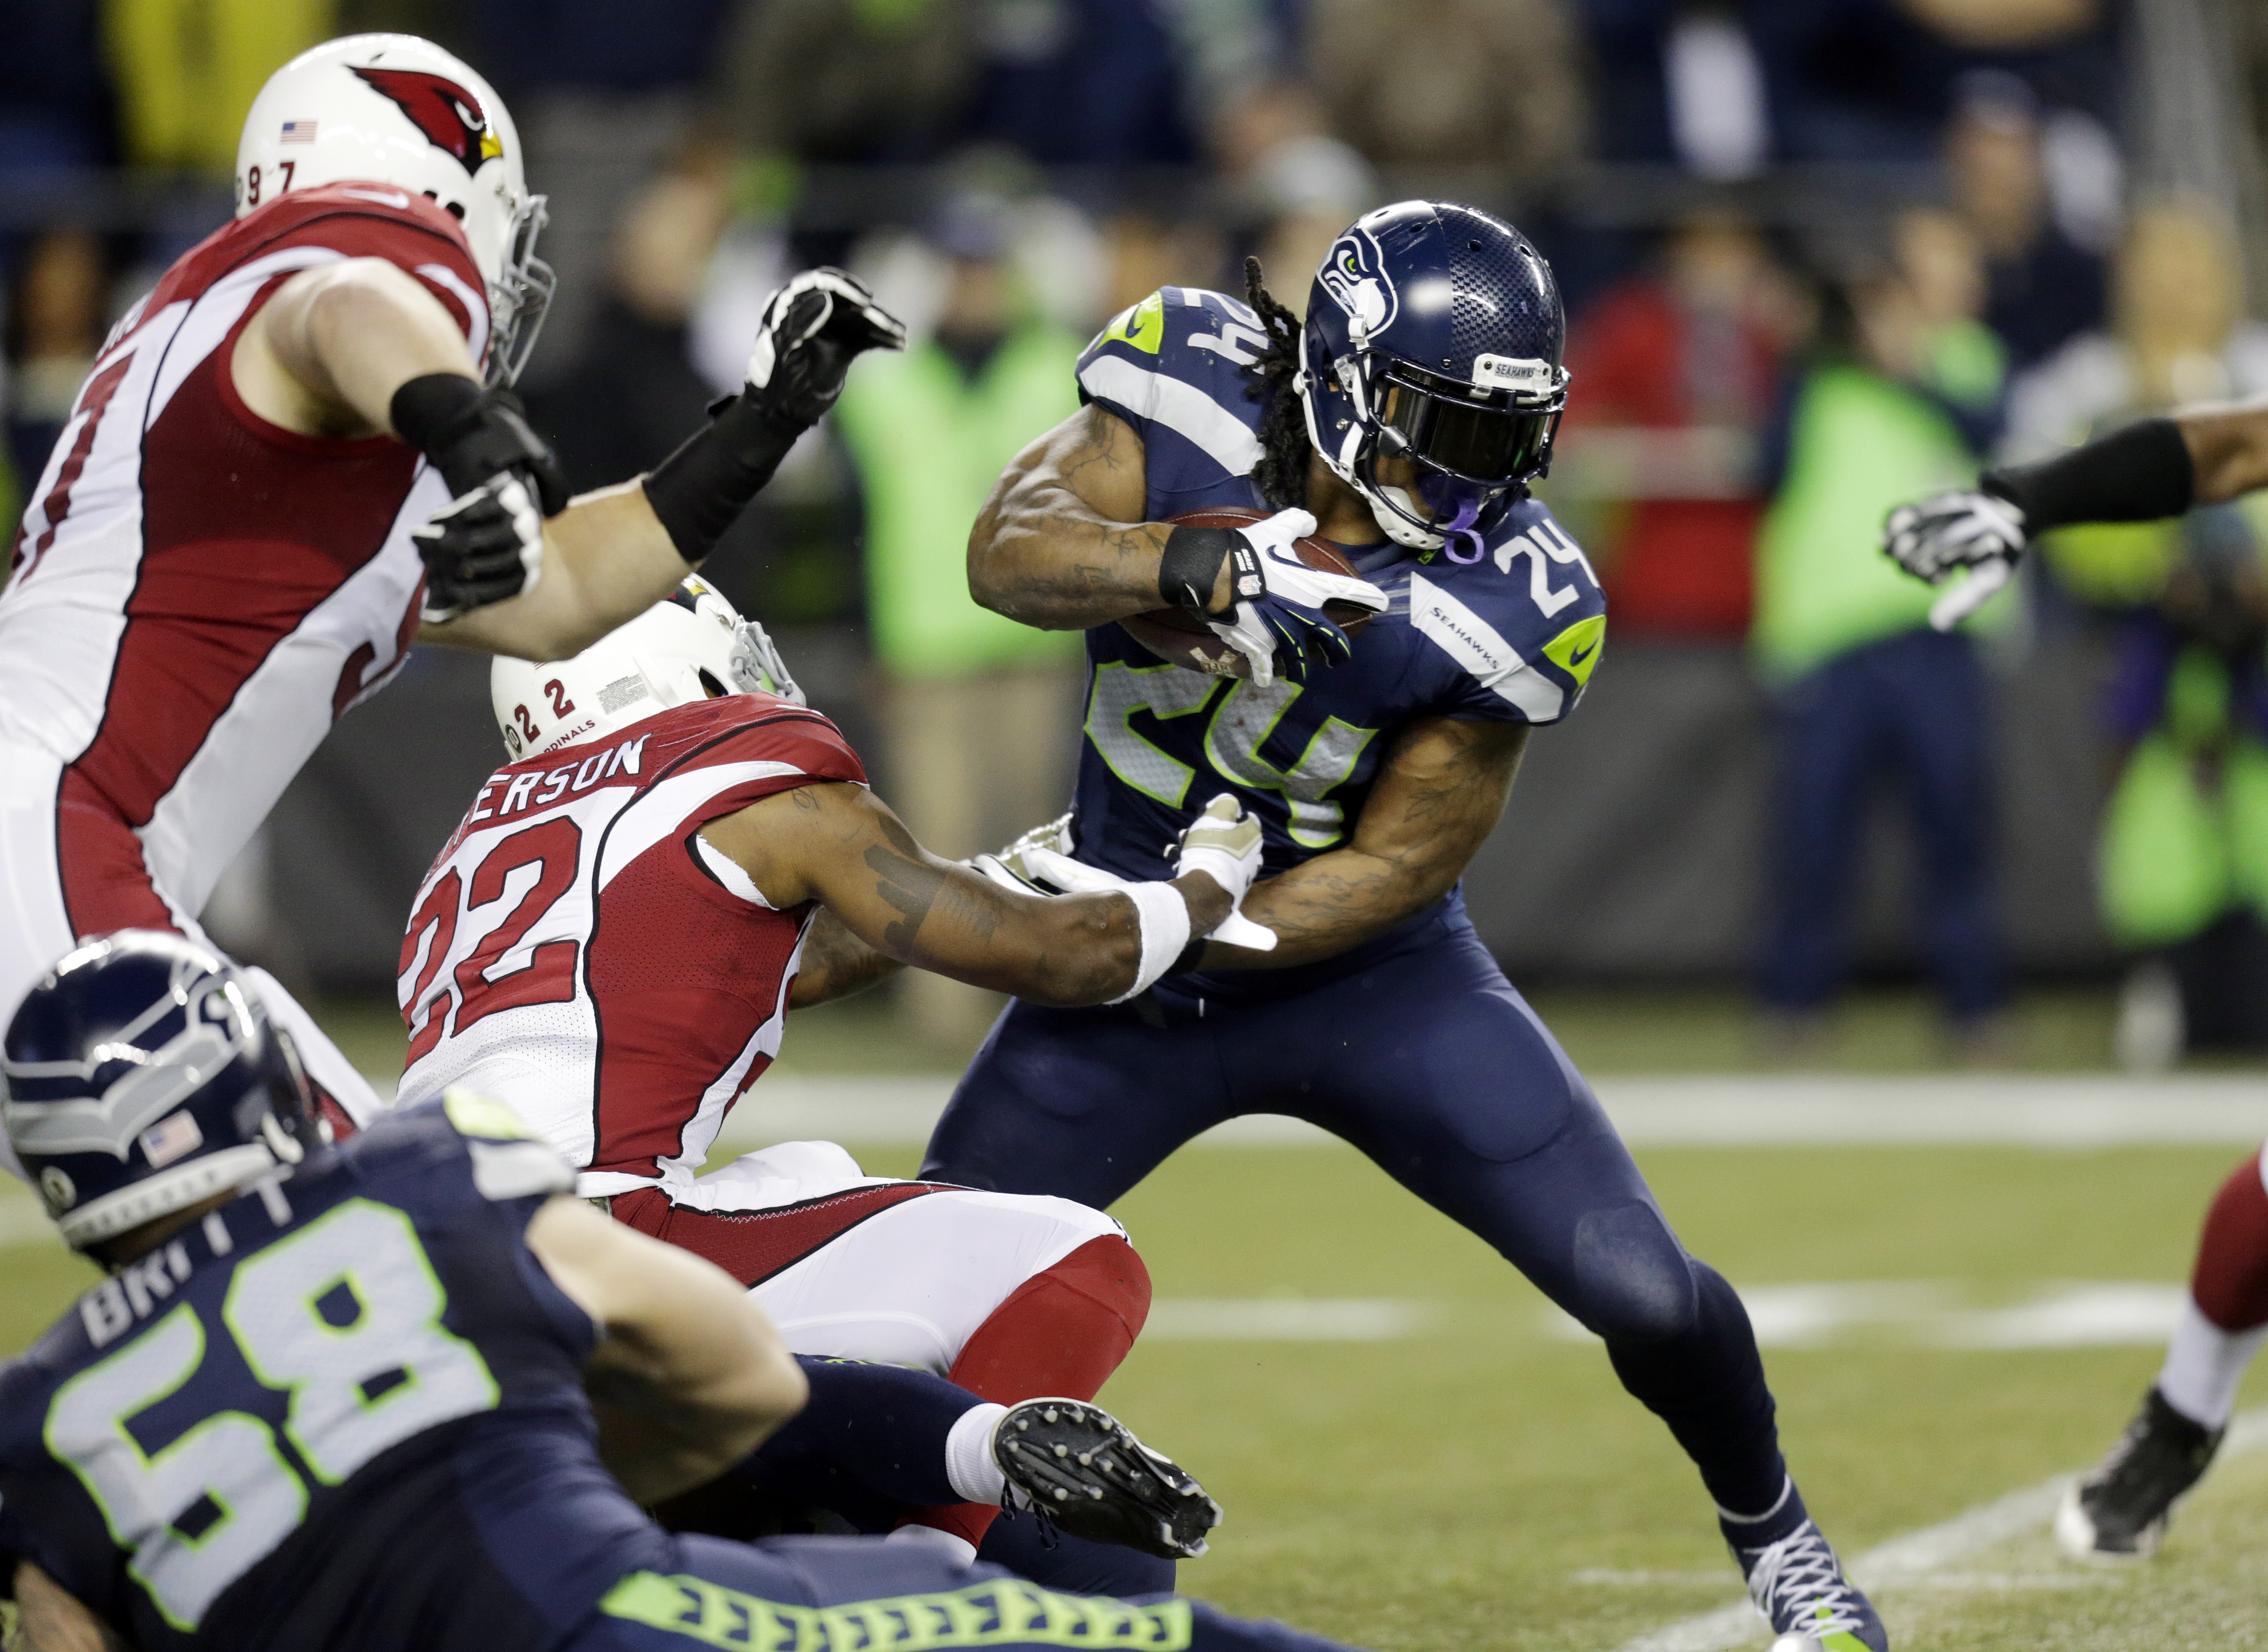 Seattle Seahawks running back Marshawn Lynch (24) rushes as Arizona Cardinals strong safety Tony Jefferson (22) attempts the tackle in the first half of an NFL football game Sunday, Nov. 15, 2015, in Seattle. (AP Photo/Stephen Brashear)